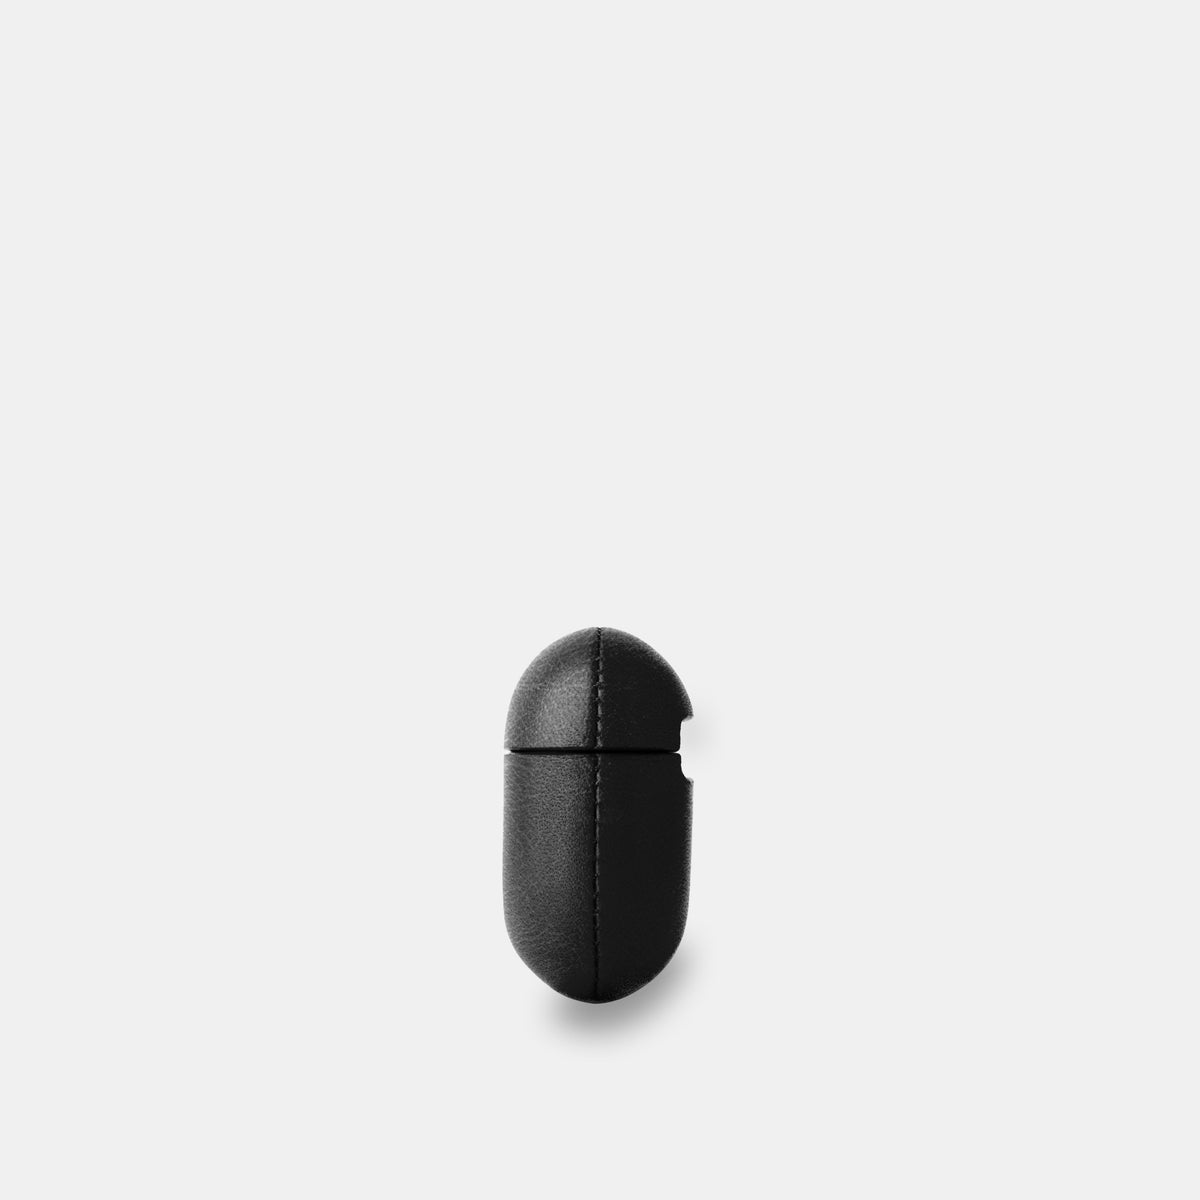 AirPods Pro Case - Deep Black